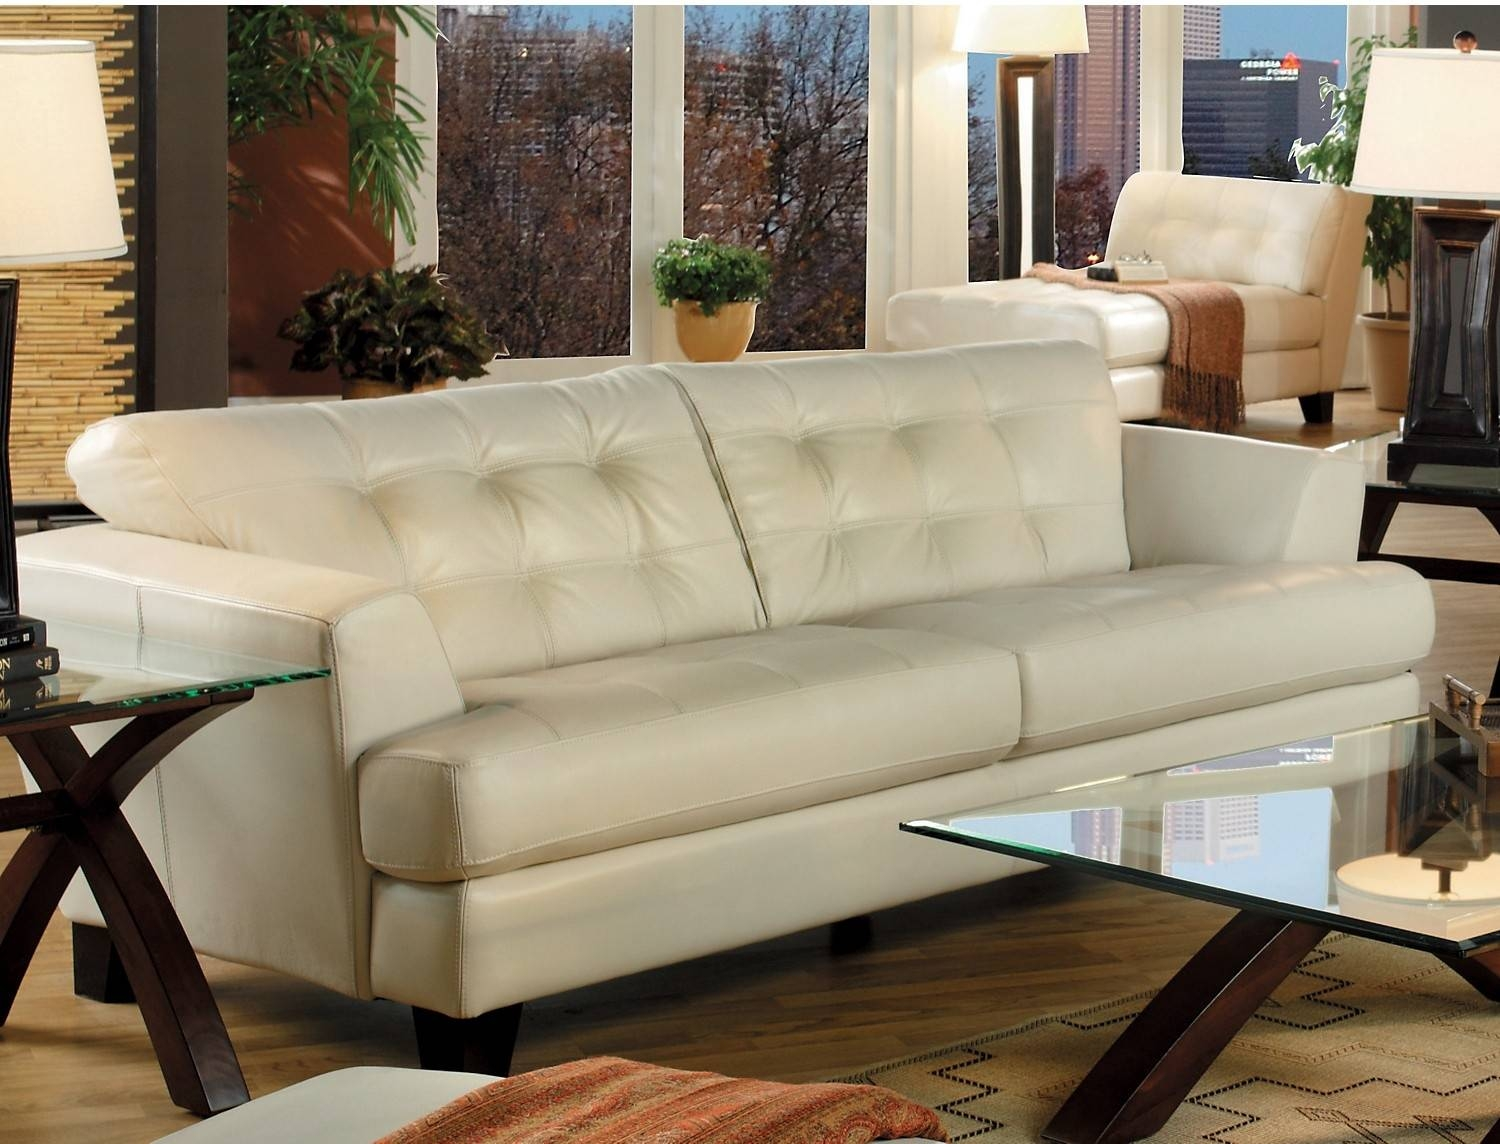 Furniture: Cindy Crawford Sectional Sofa For Elegant Living Room intended for Cindy Crawford Furniture Sectional Sofas (Image 8 of 15)